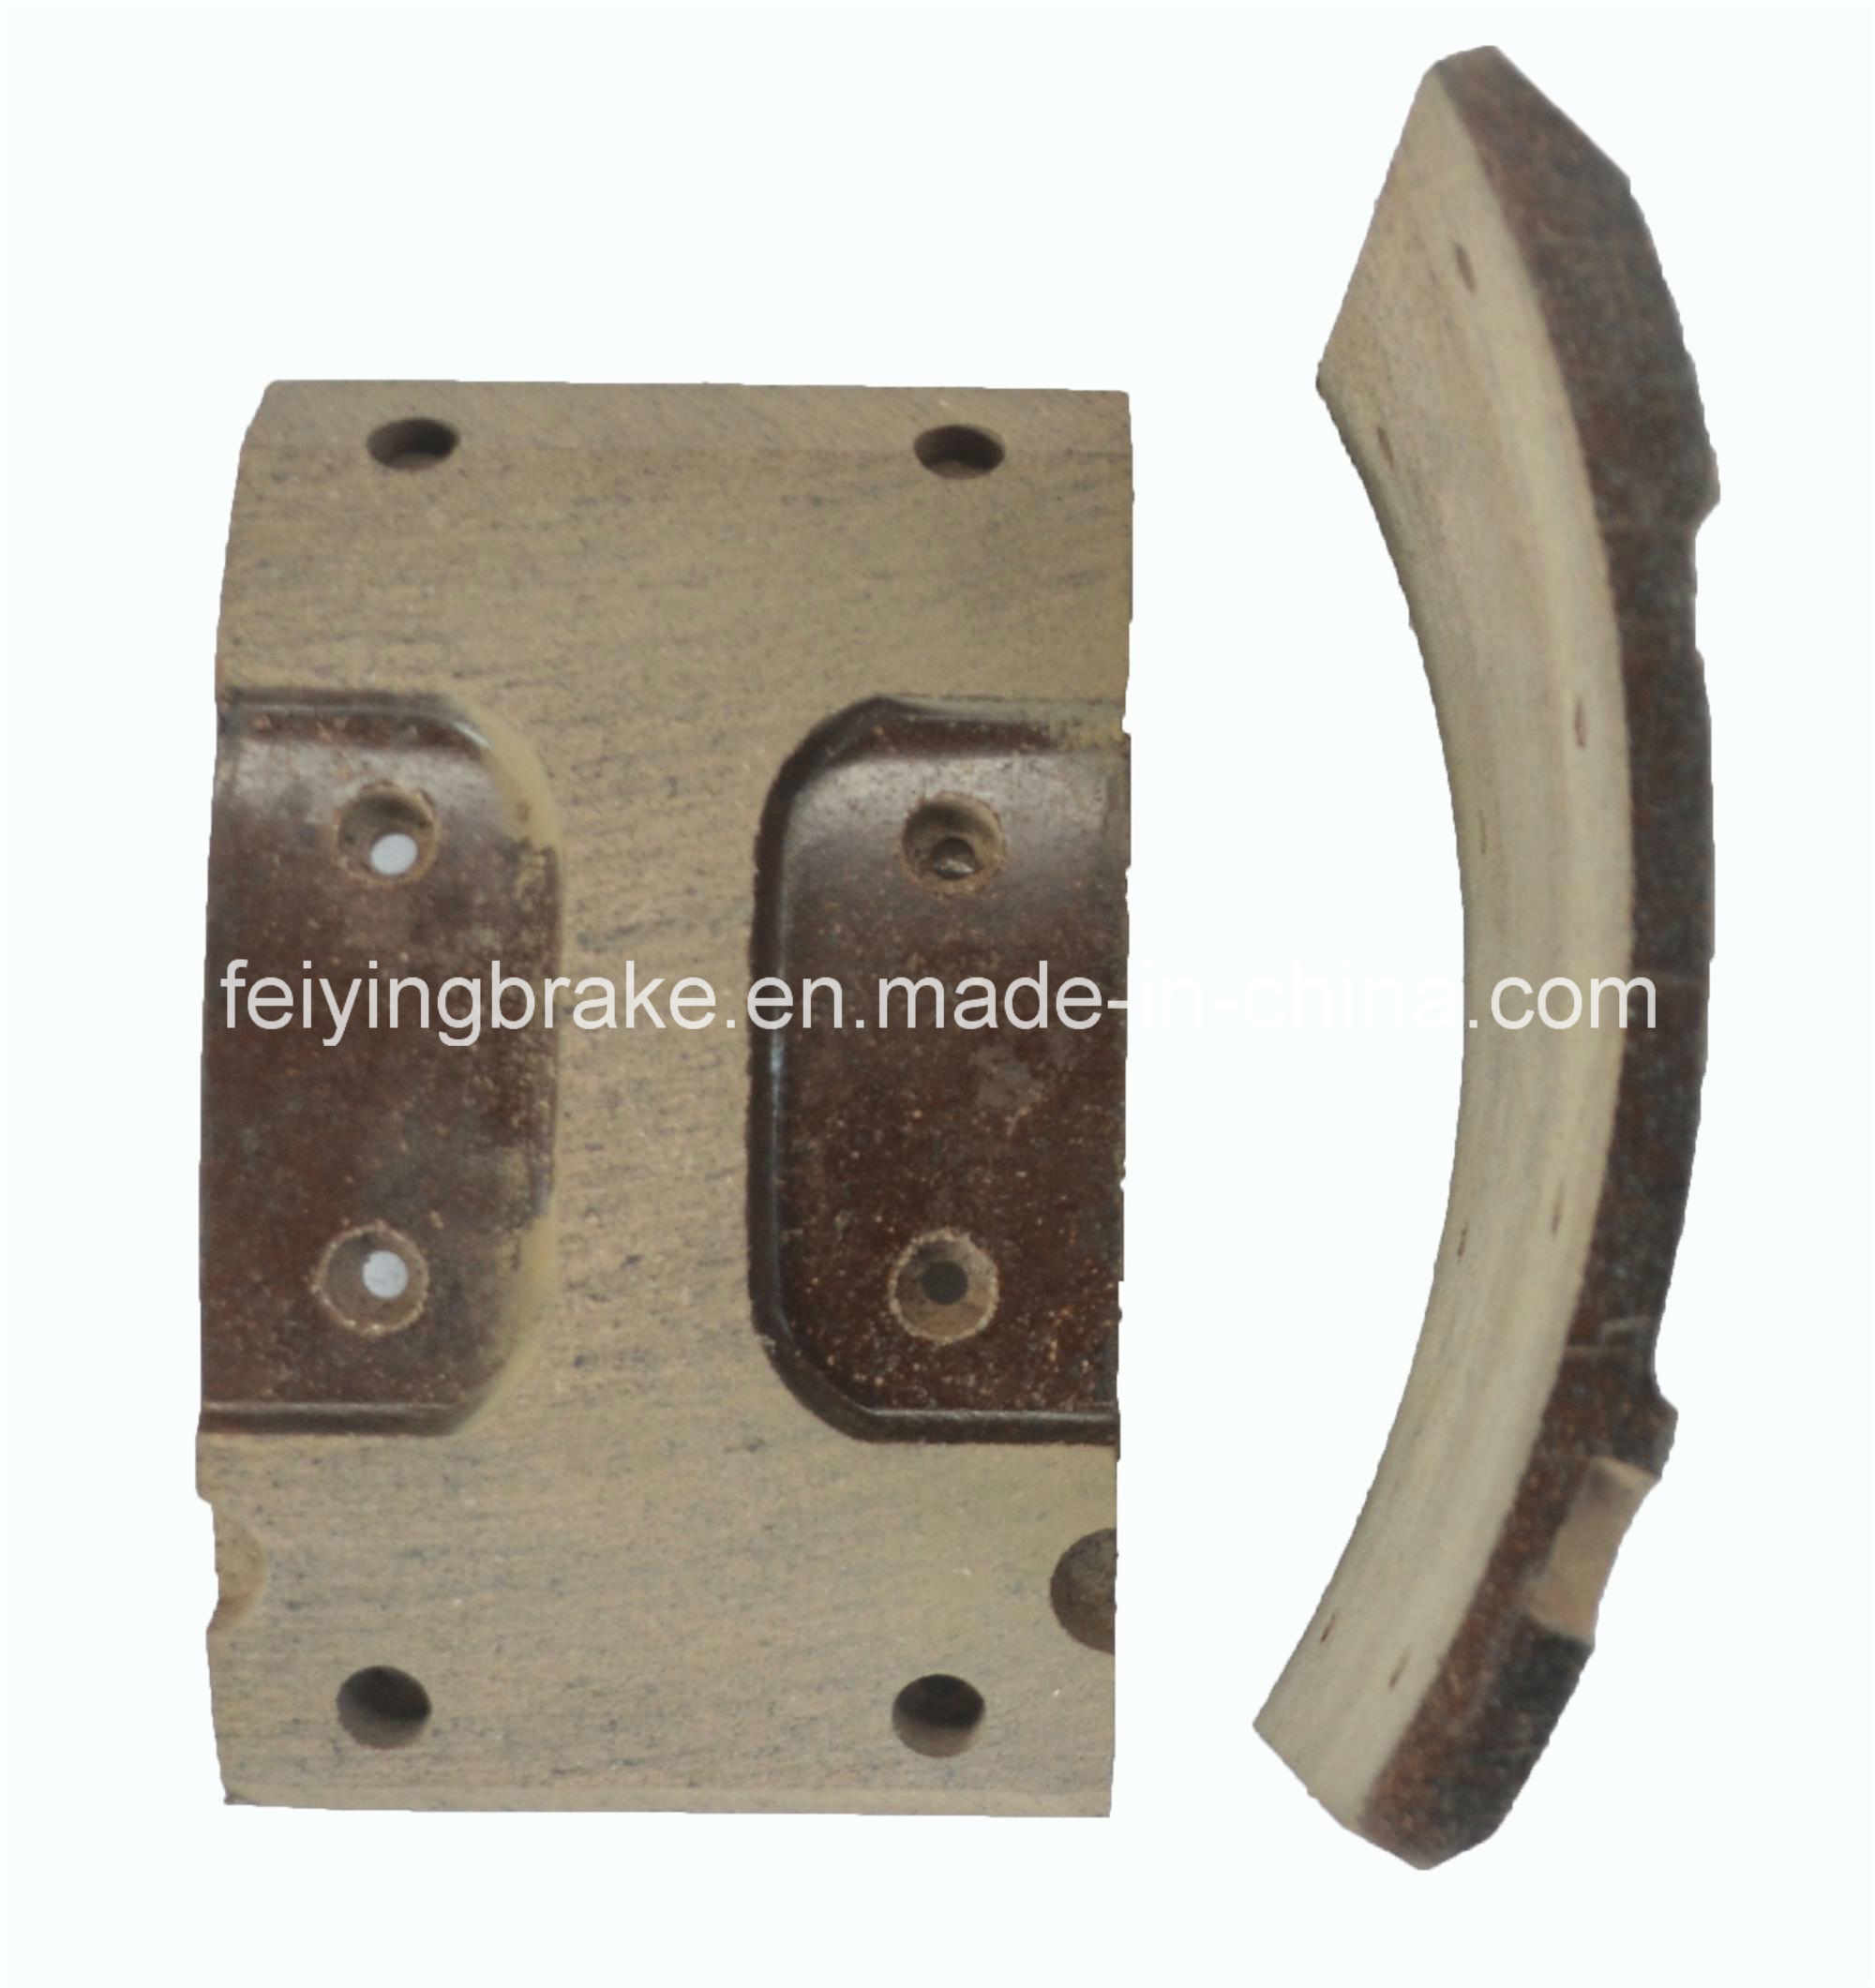 Japanese Truck Hino Zy F 477441-1180A Brake Lining